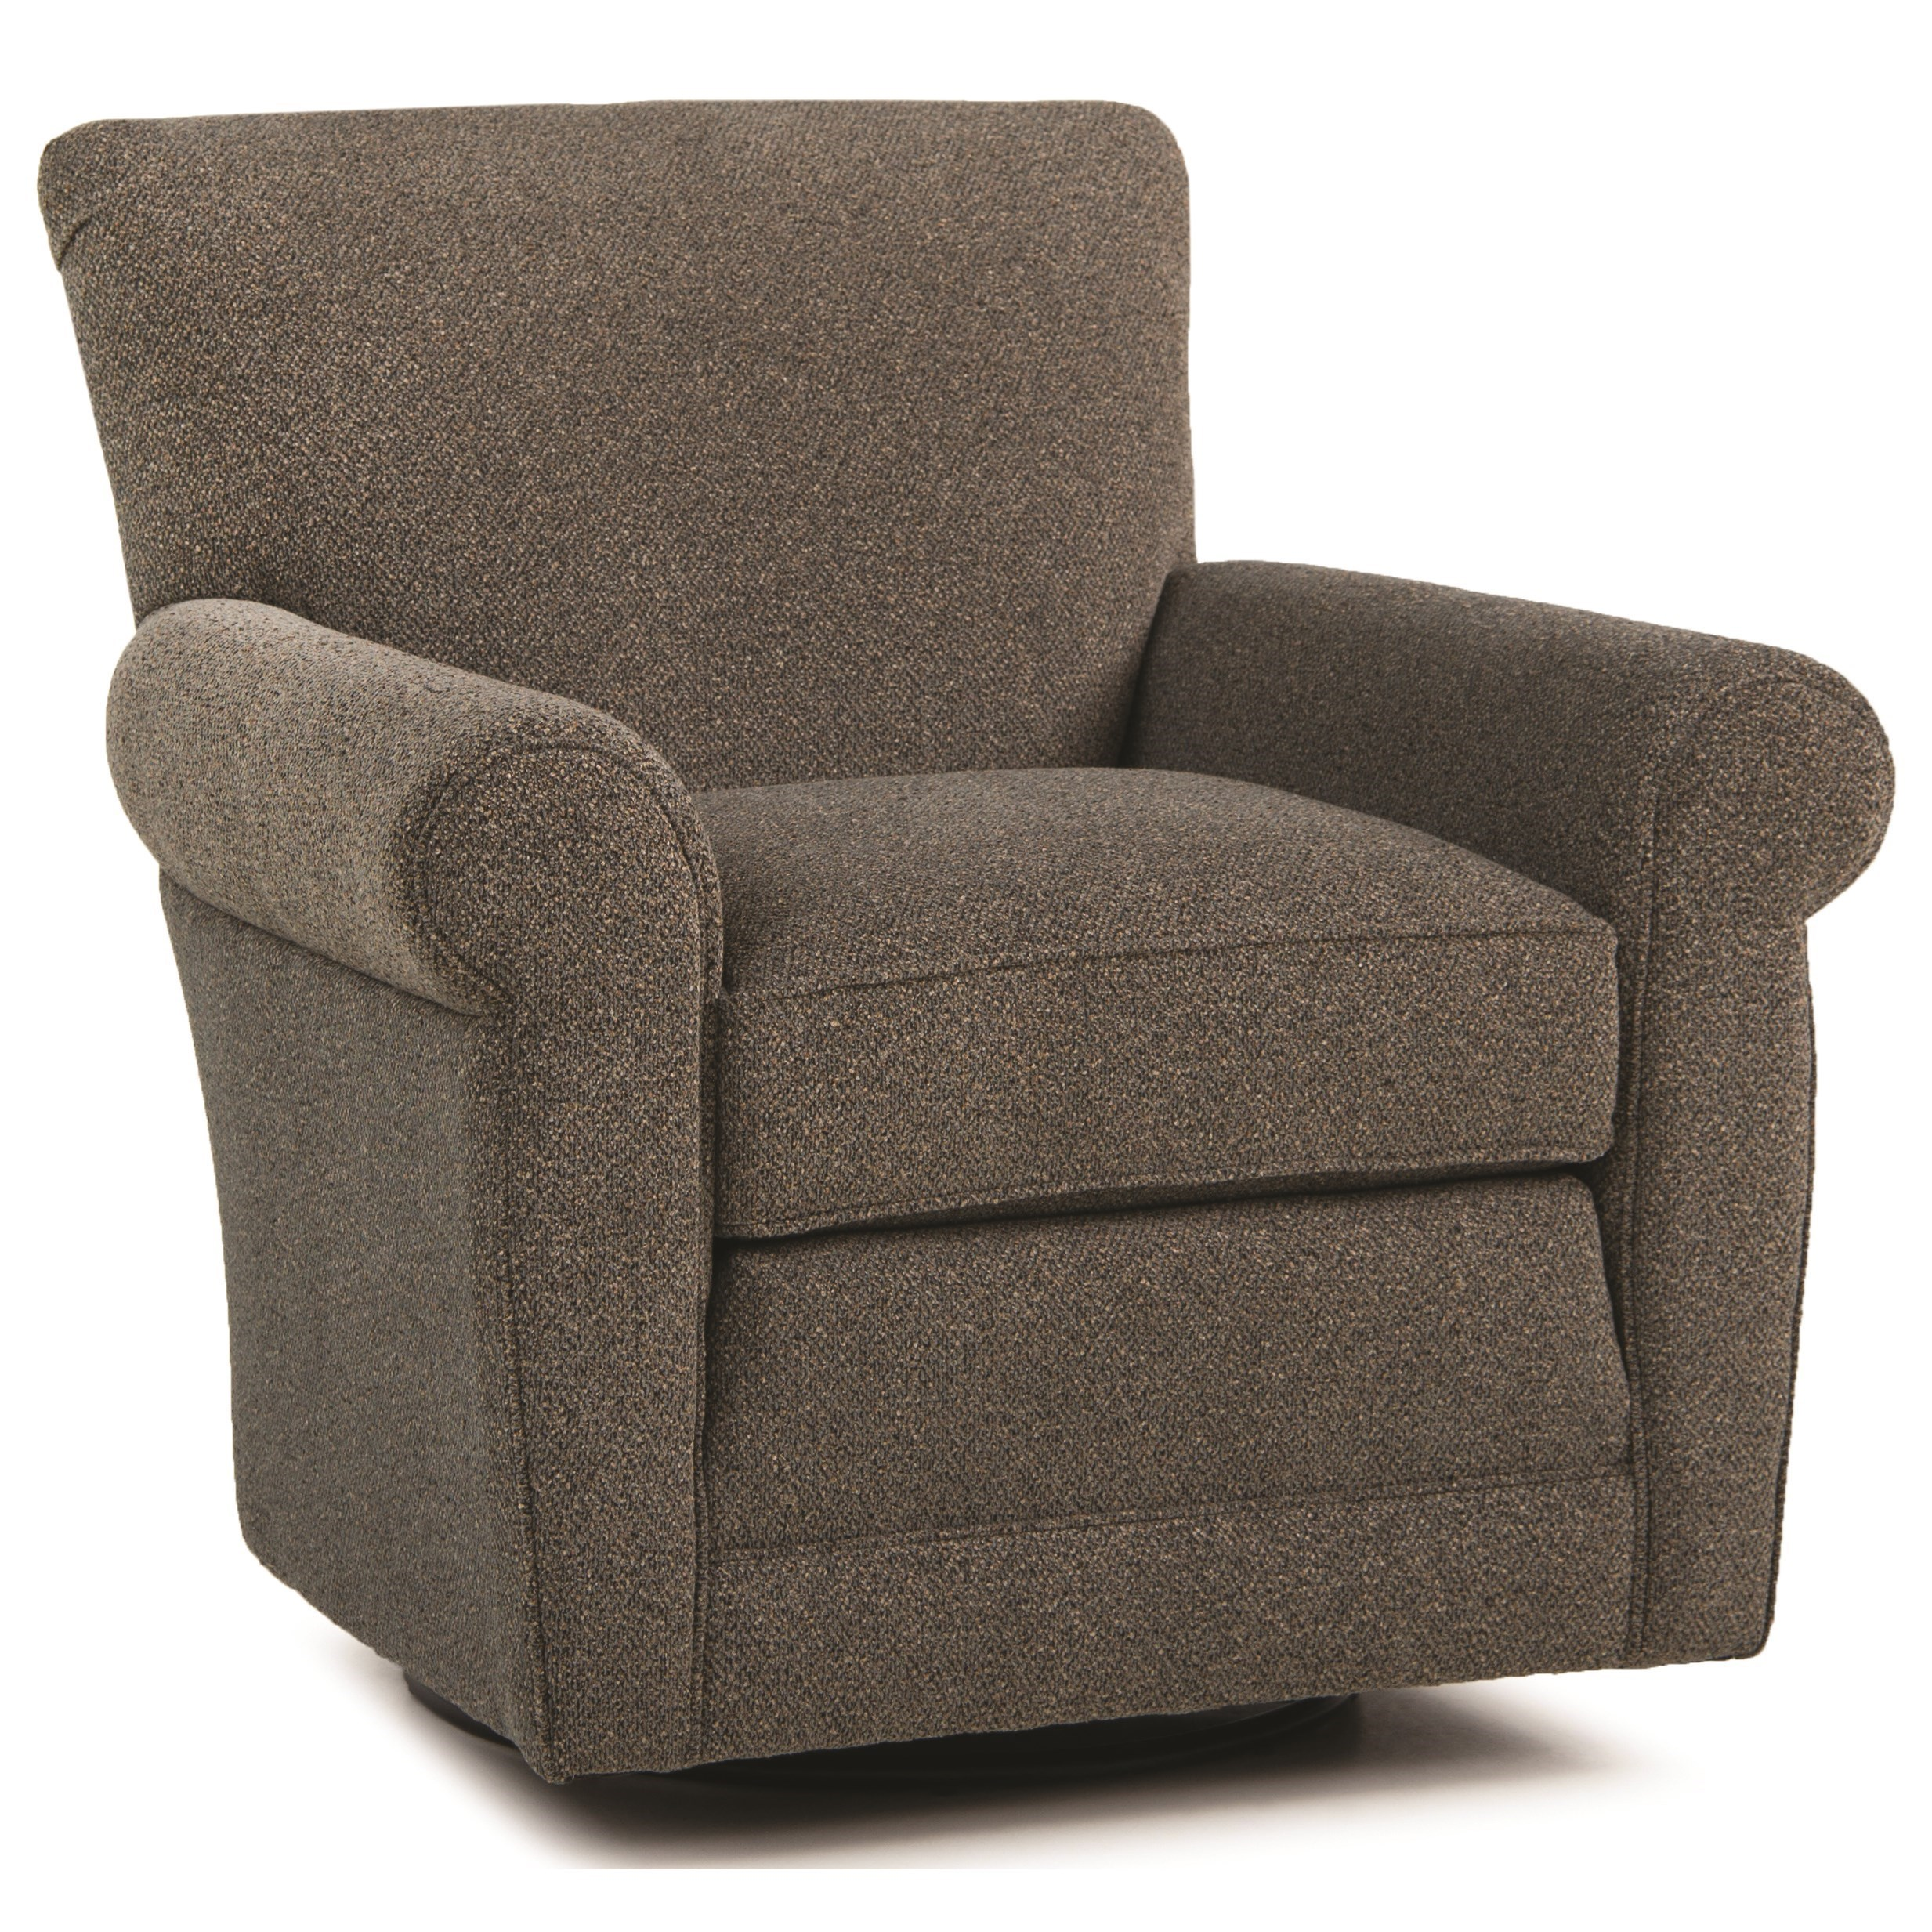 514 Swivel Glider Chair by Smith Brothers at Mueller Furniture